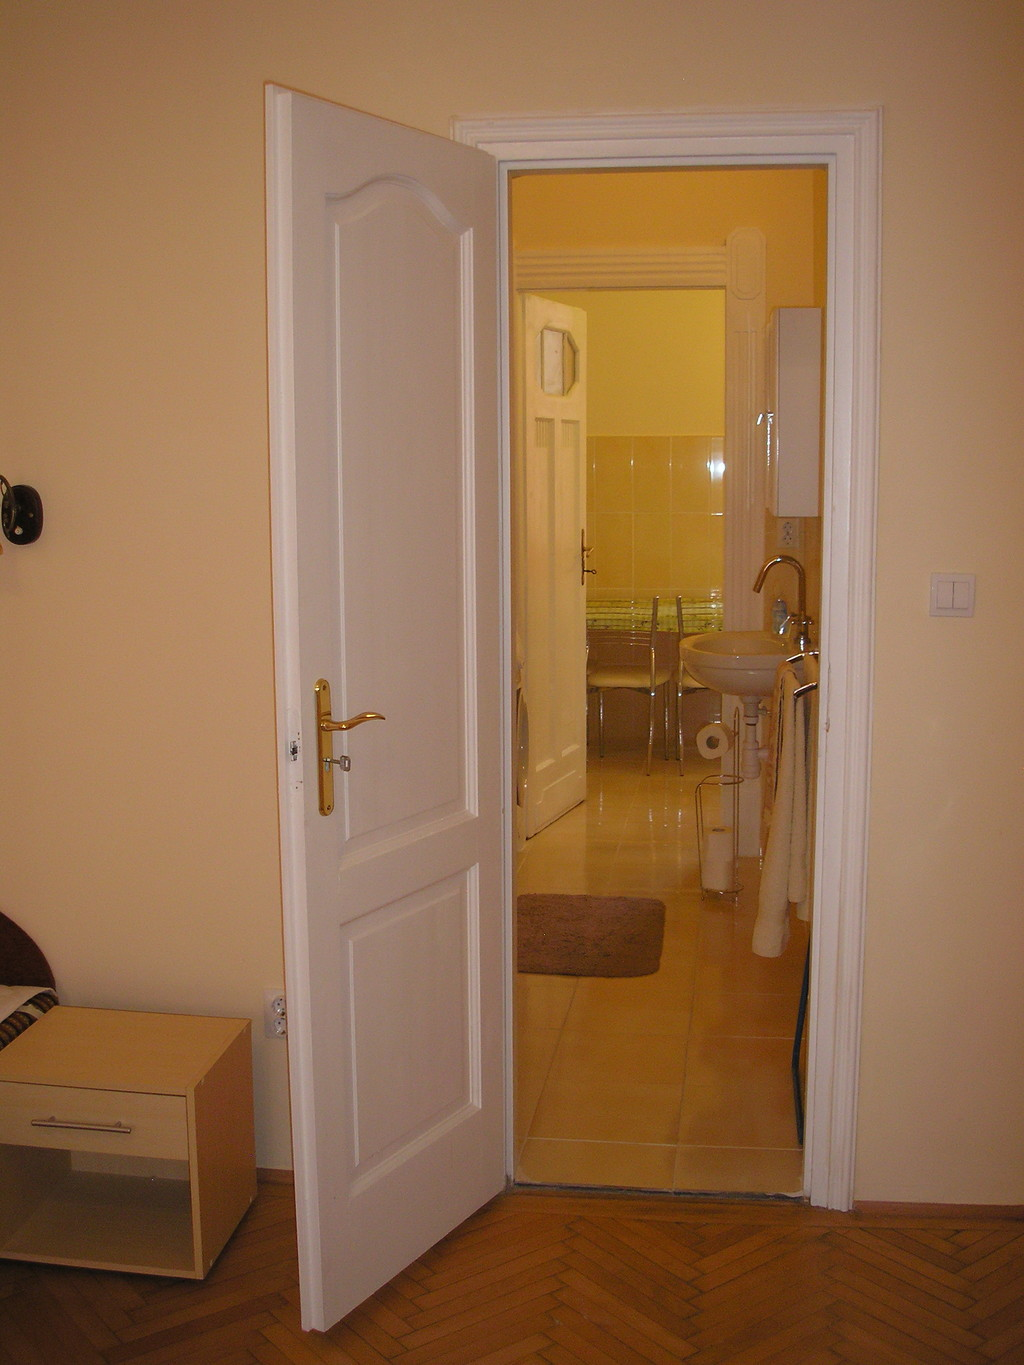 Private Room Rent Budapest